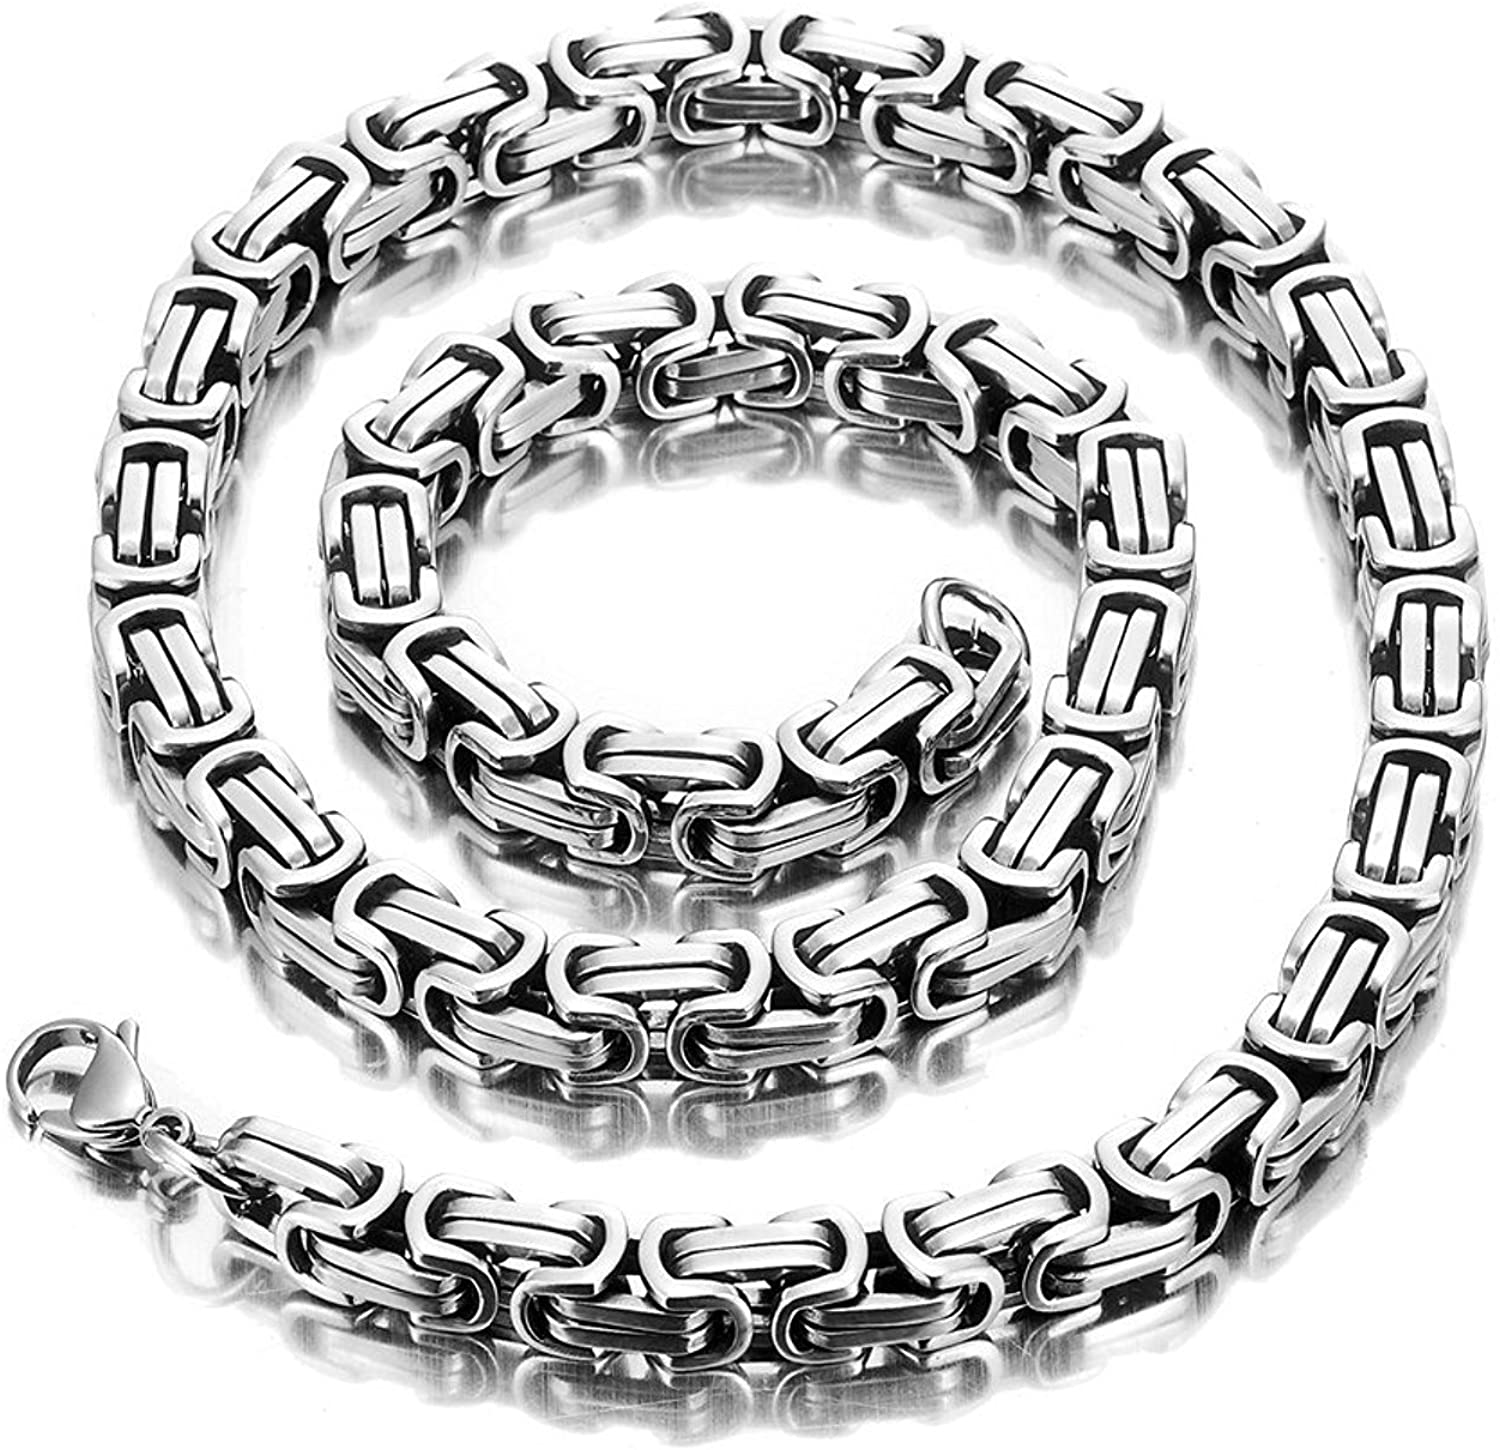 URBAN JEWELRY Impressive Mechanic Style Men's Necklace Stainless Steel Silver Chain, Width 6mm (19,21,23 Inches)